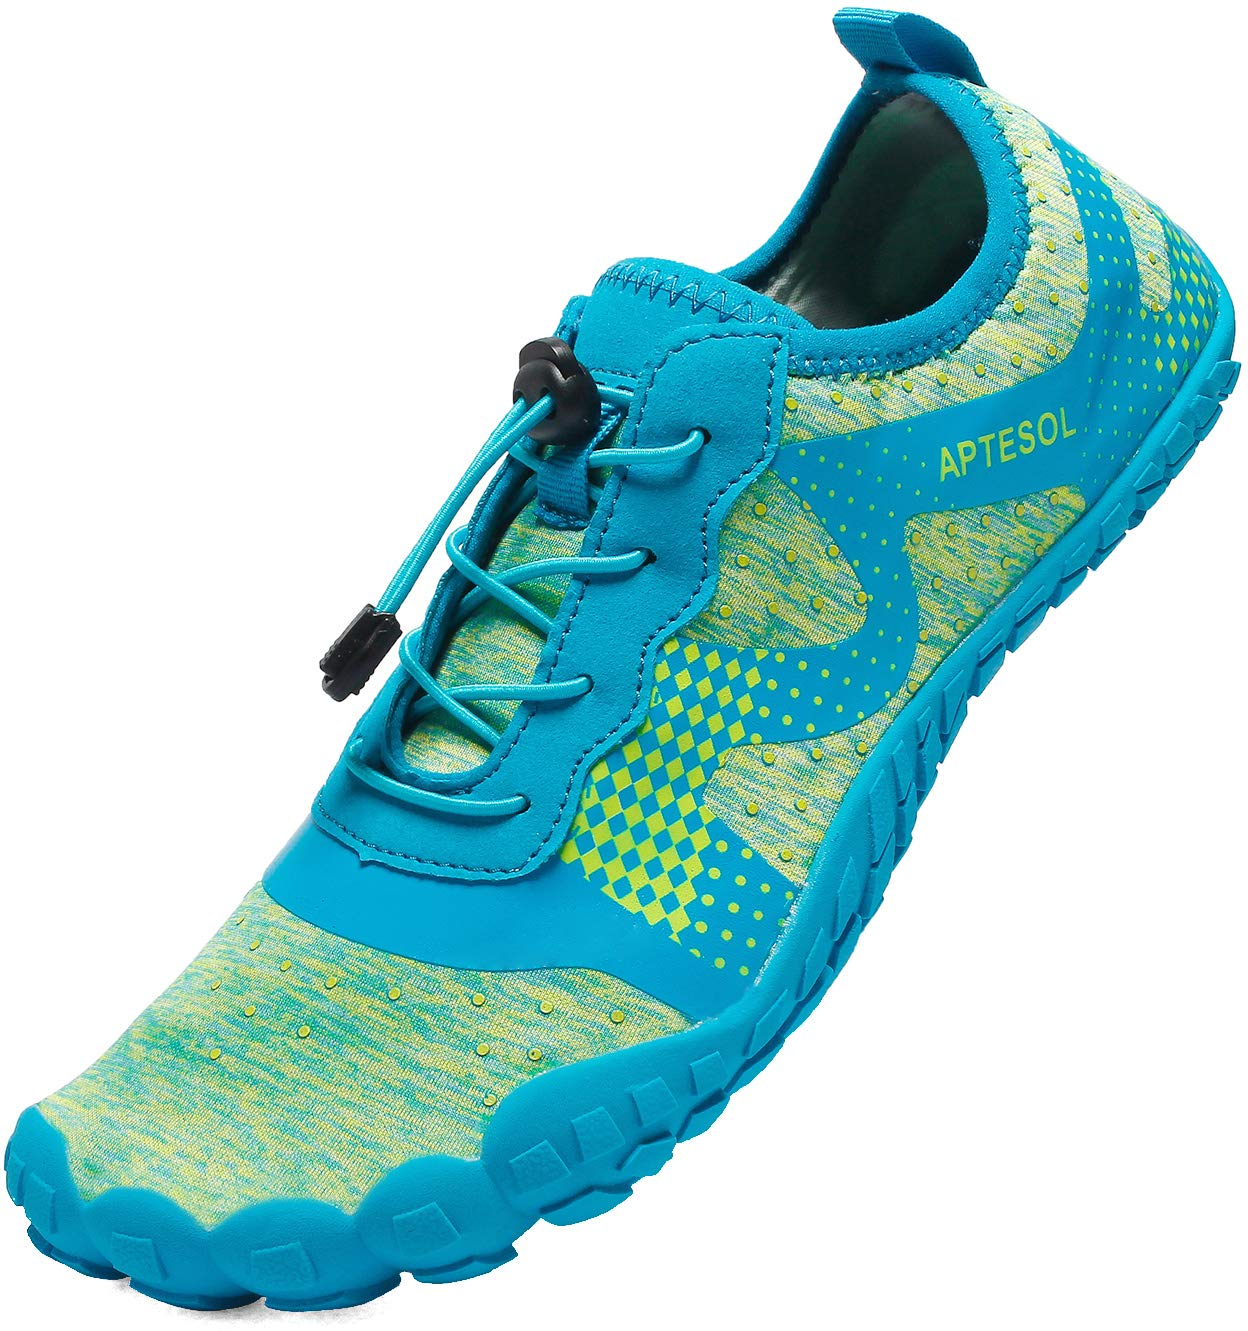 APTESOL Mens Athletic Water Shoes Barefoot Beach Inspired Minimalist Trail Runner Sneakers